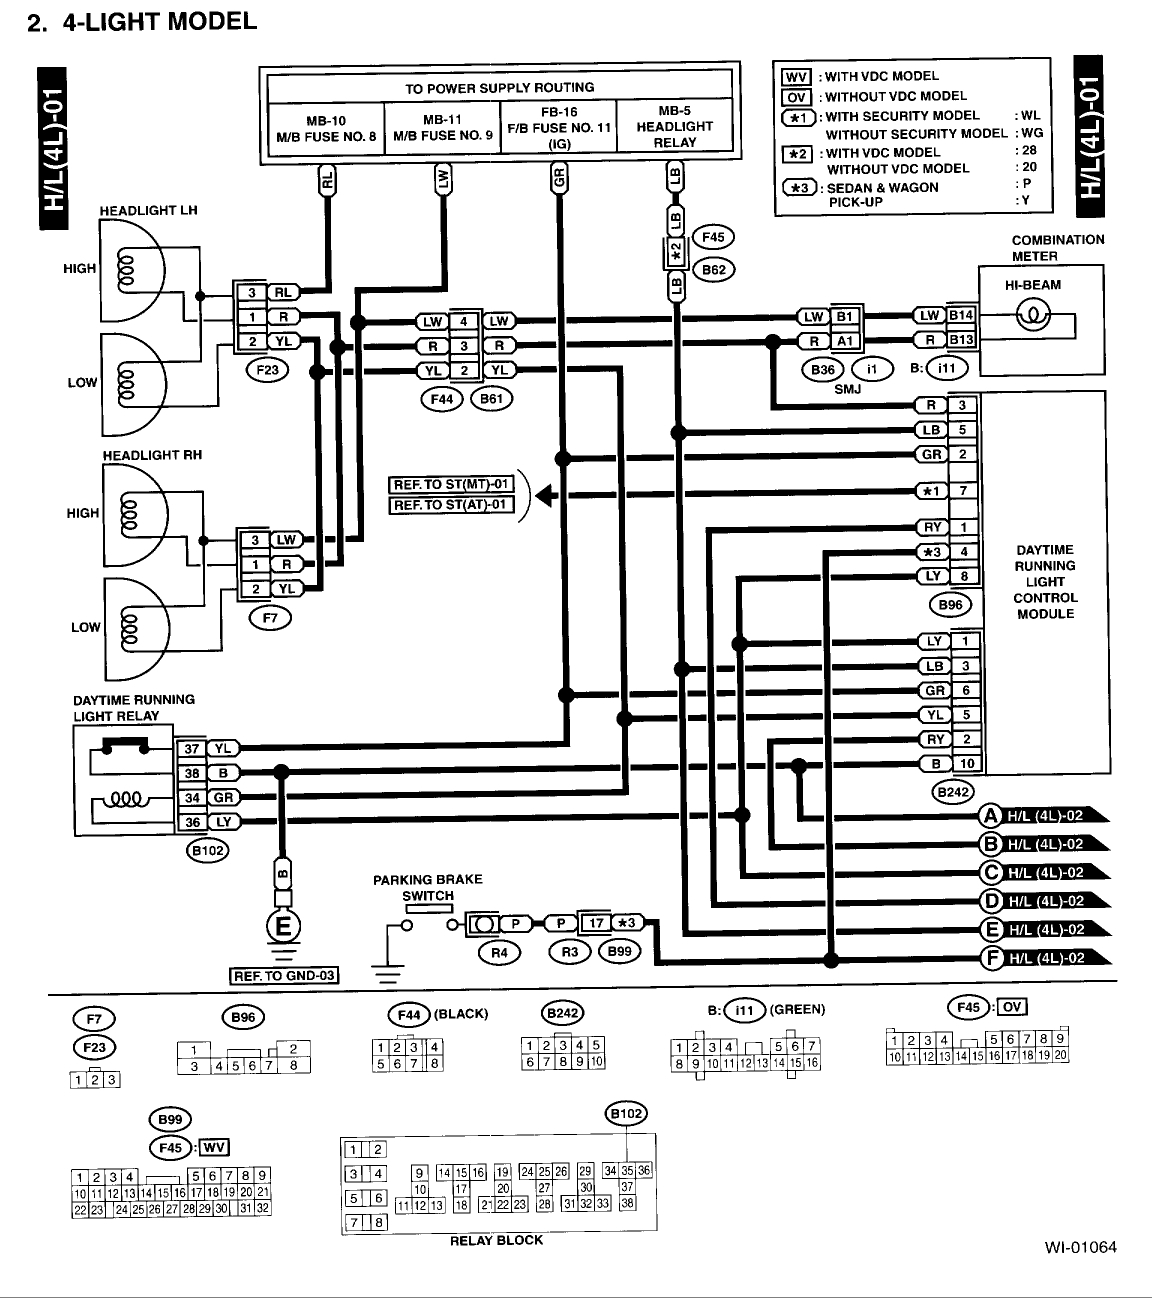 hight resolution of subaru outback wiring layout owner manual wiring diagram subaru outback body parts diagram subaru outback diagram